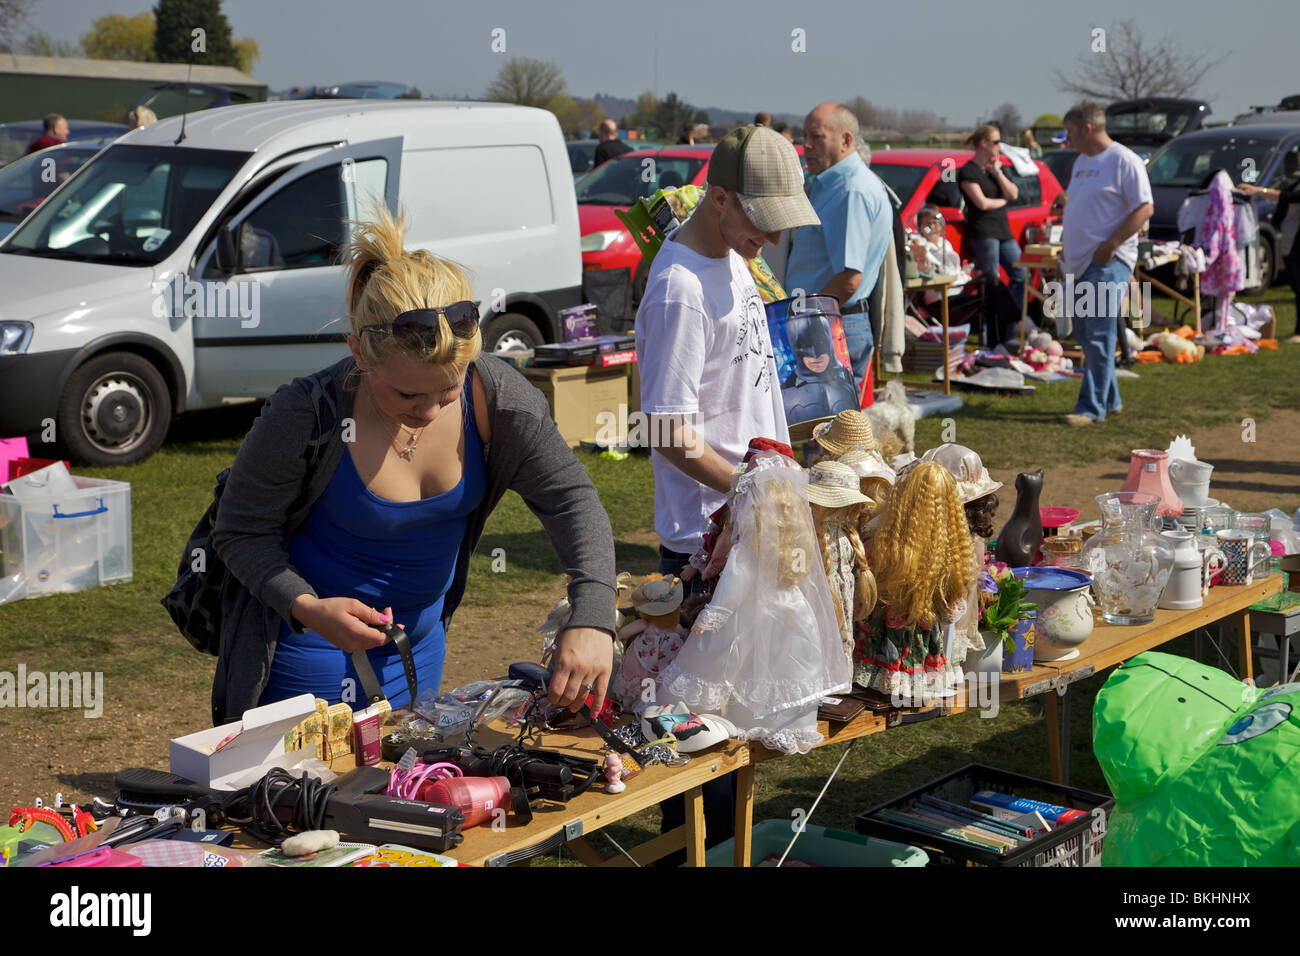 A car boot sale in England - Stock Image